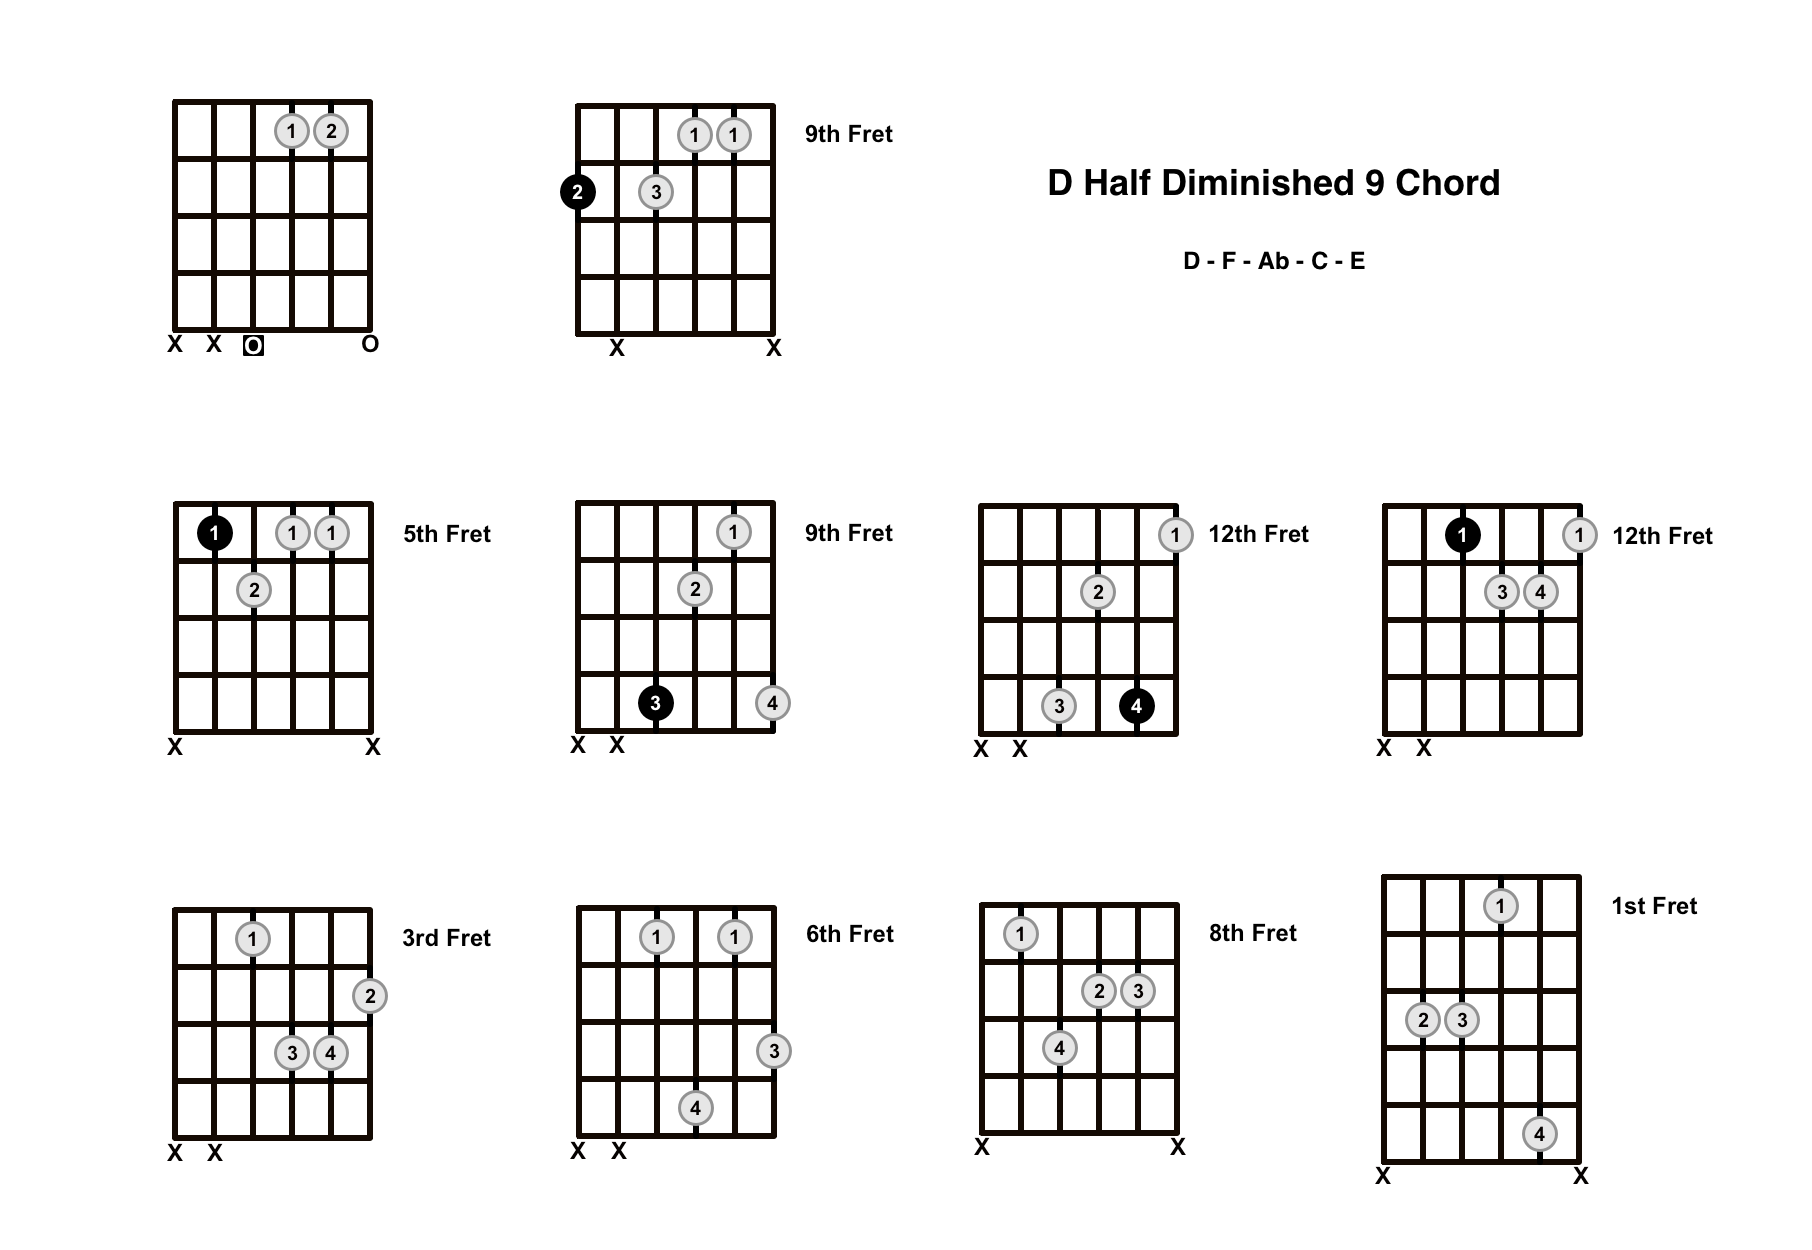 Dm9b5 Chord On The Guitar (D Half Diminished 9) – Diagrams, Finger Positions and Theory